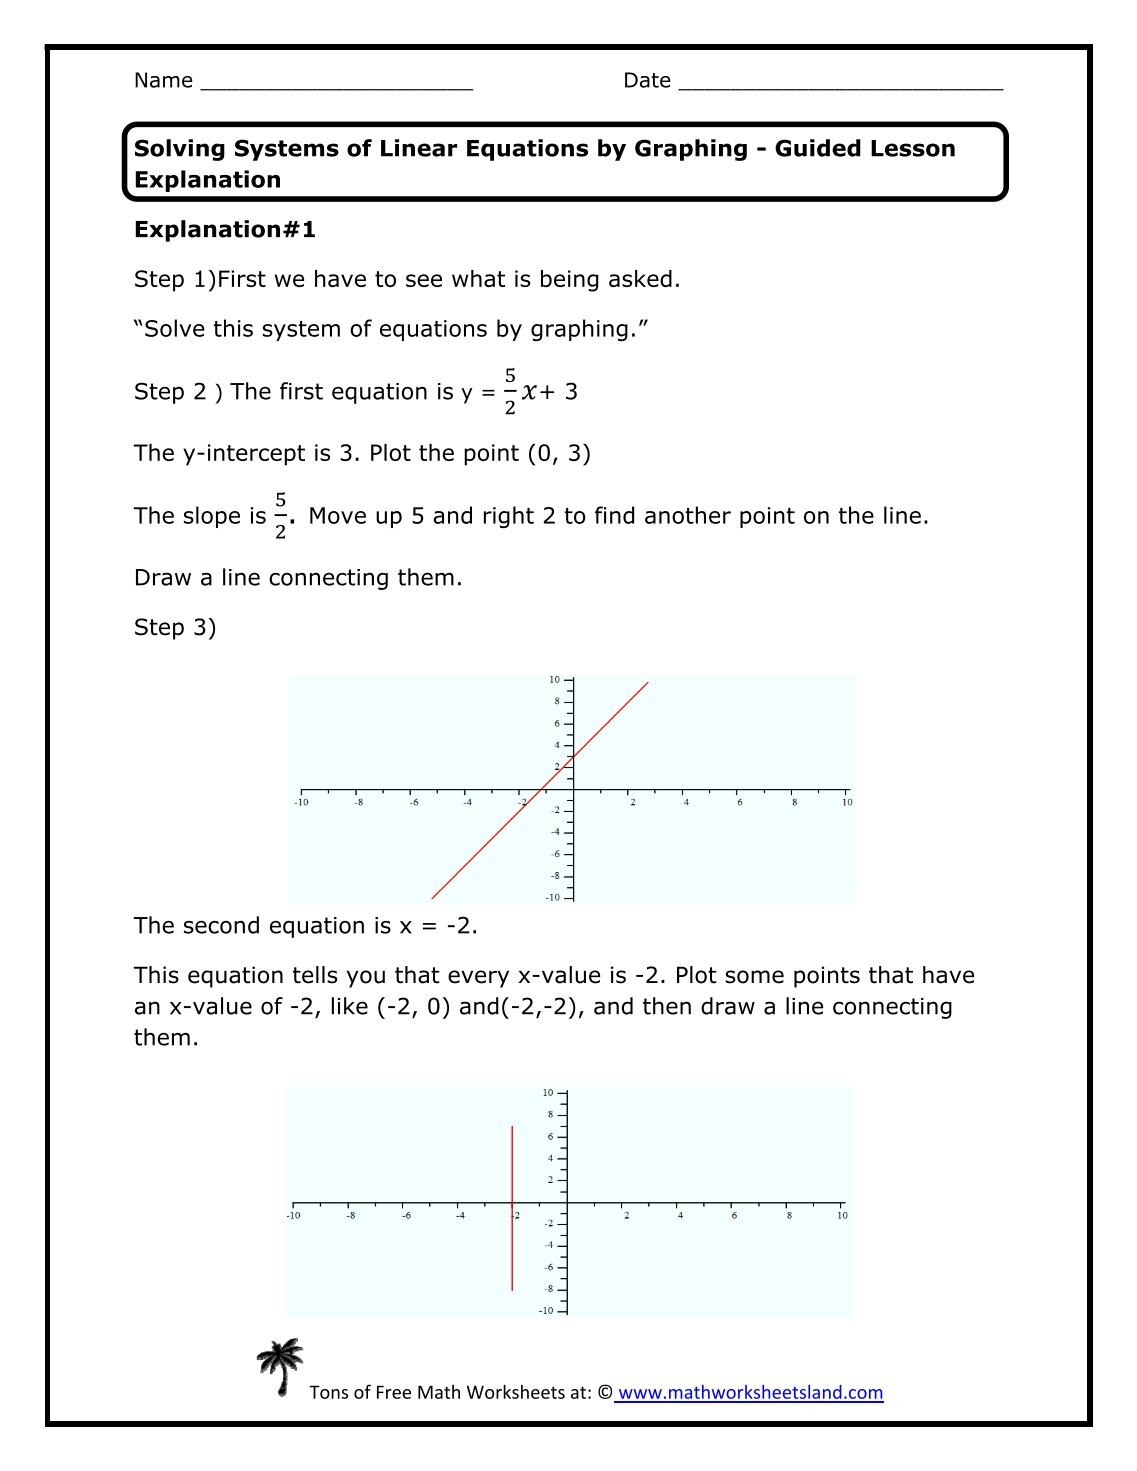 math worksheet : worksheet math worksheet land luizah worksheet and essay site  : Math Worksheet Land